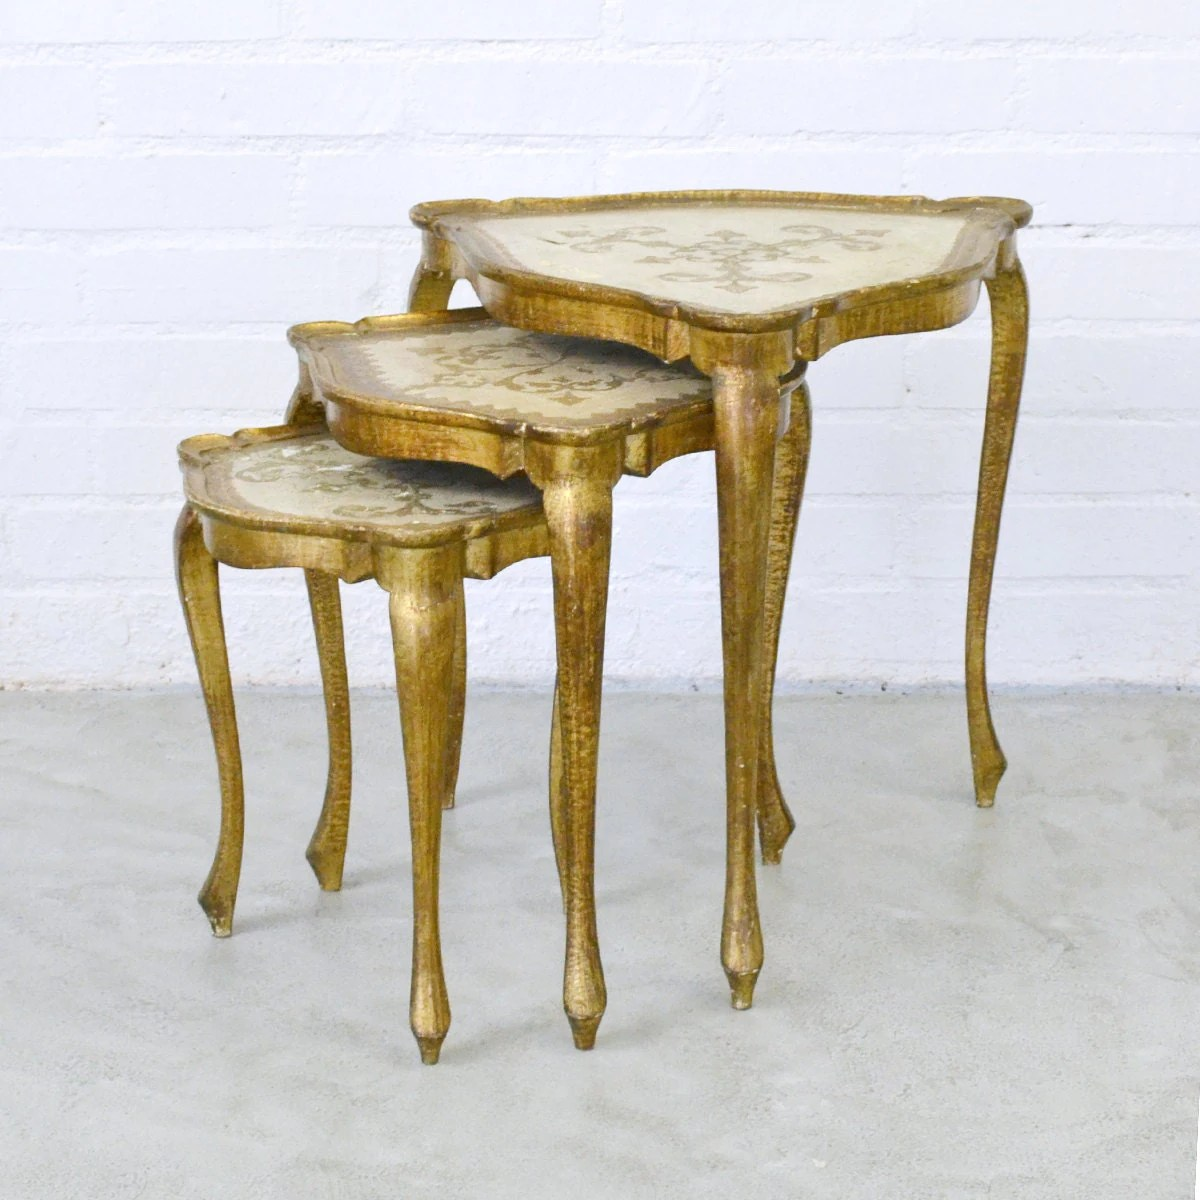 Gold Shabby Chic Coffee Table: Florentine Vintage Style Triangle Nesting Tables Gold